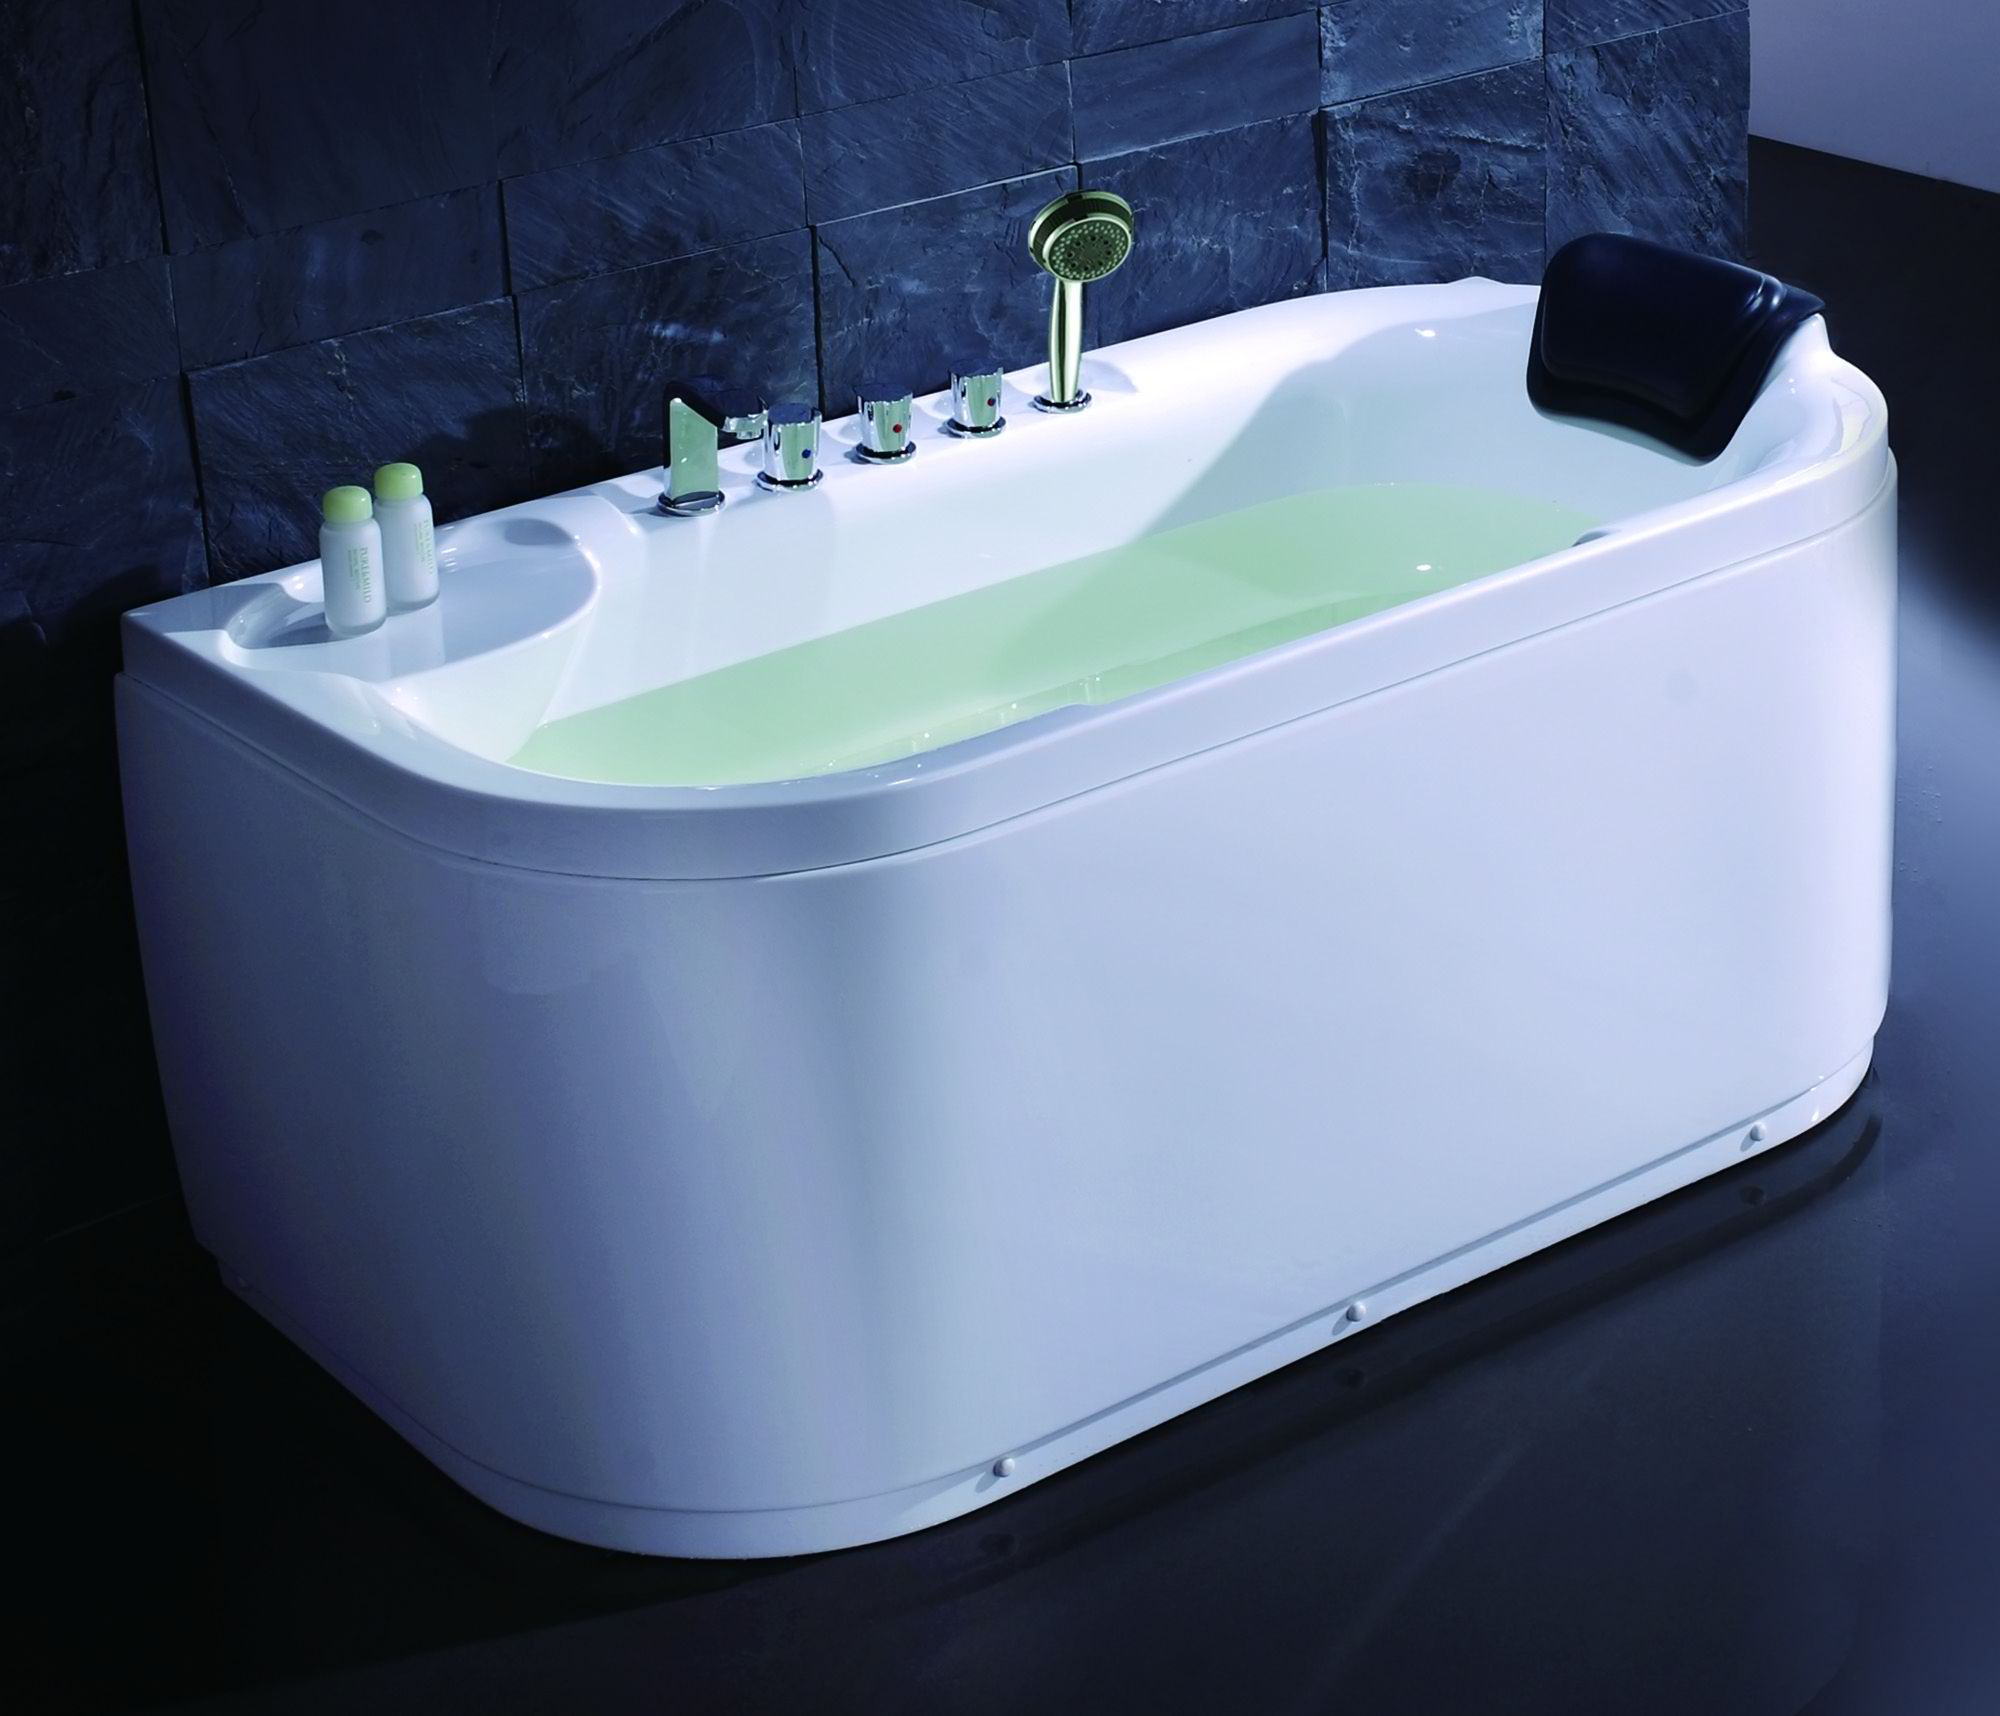 EAGO LK1103 White Acrylic 5' Soaking Tub with Fixtures Drain Placement Option